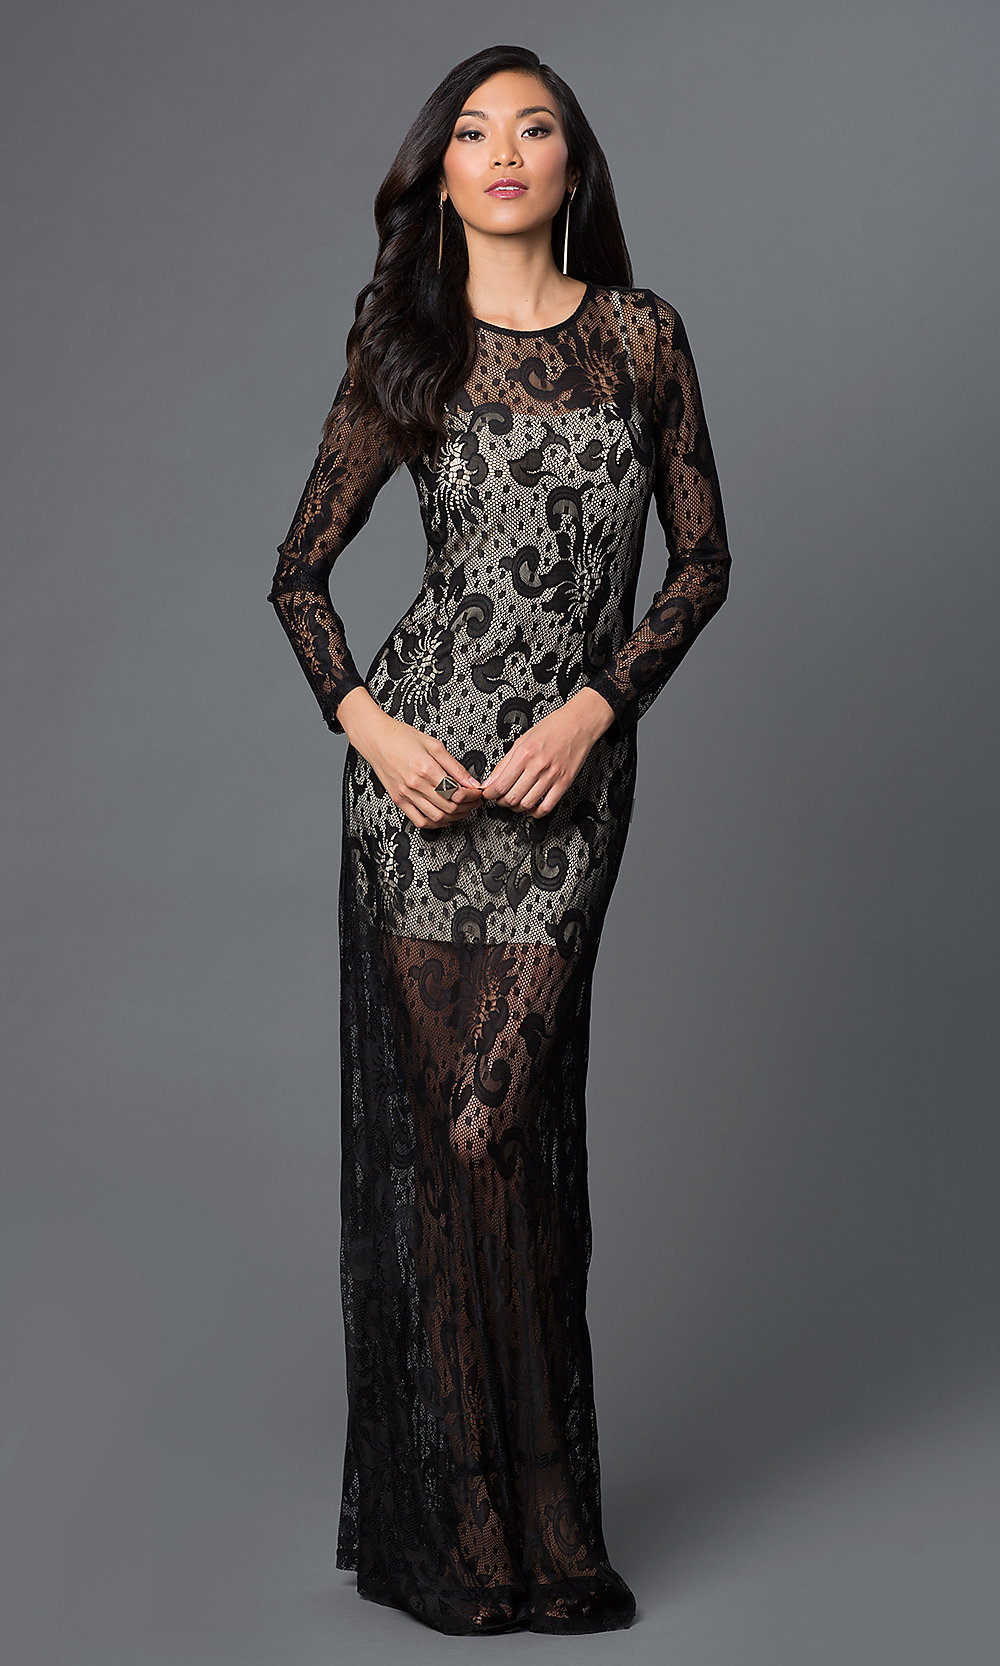 Long Sleeve Sheer Illusion Lace Dress - PromGirl